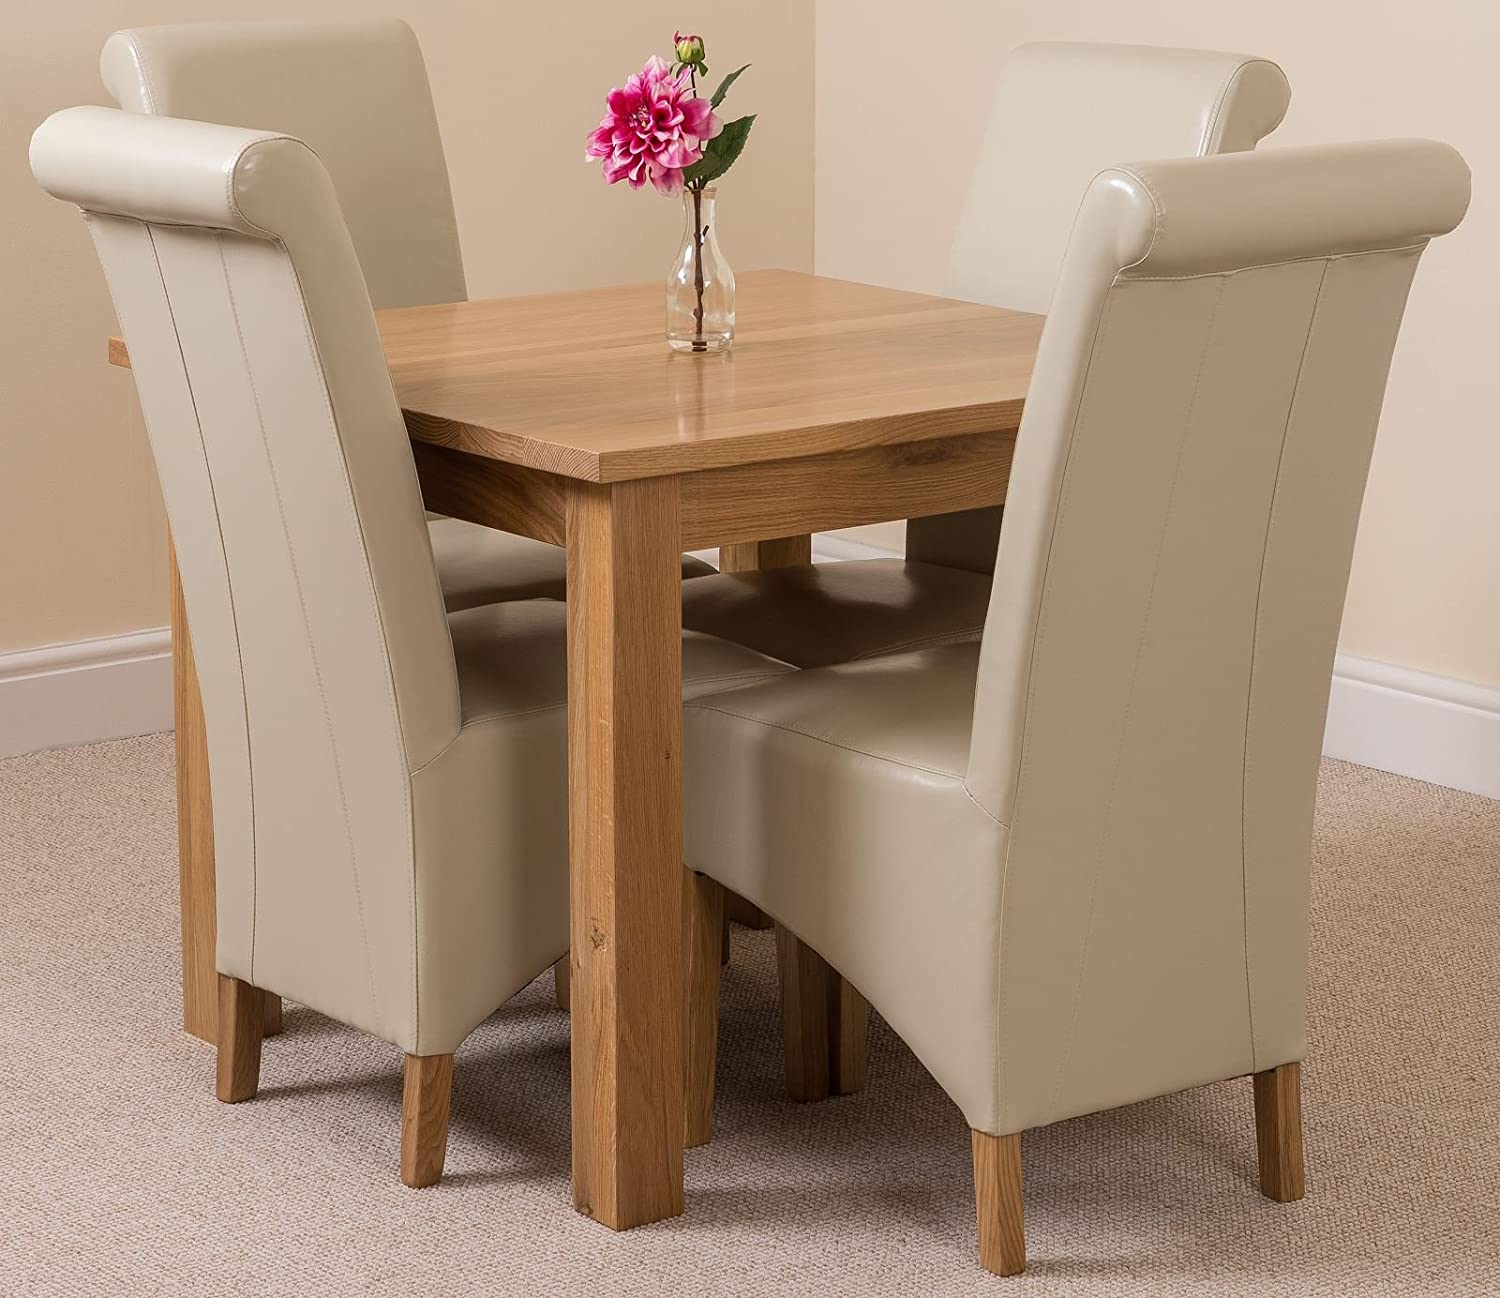 Oslo Solid Oak Square  90 cm x 90 cm  Dining Room Table   4 Montana Leather  Chairs  Amazon co uk  Kitchen   HomeOslo Solid Oak Square  90 cm x 90 cm  Dining Room Table   4  . Oak Dining Table Sets Uk. Home Design Ideas